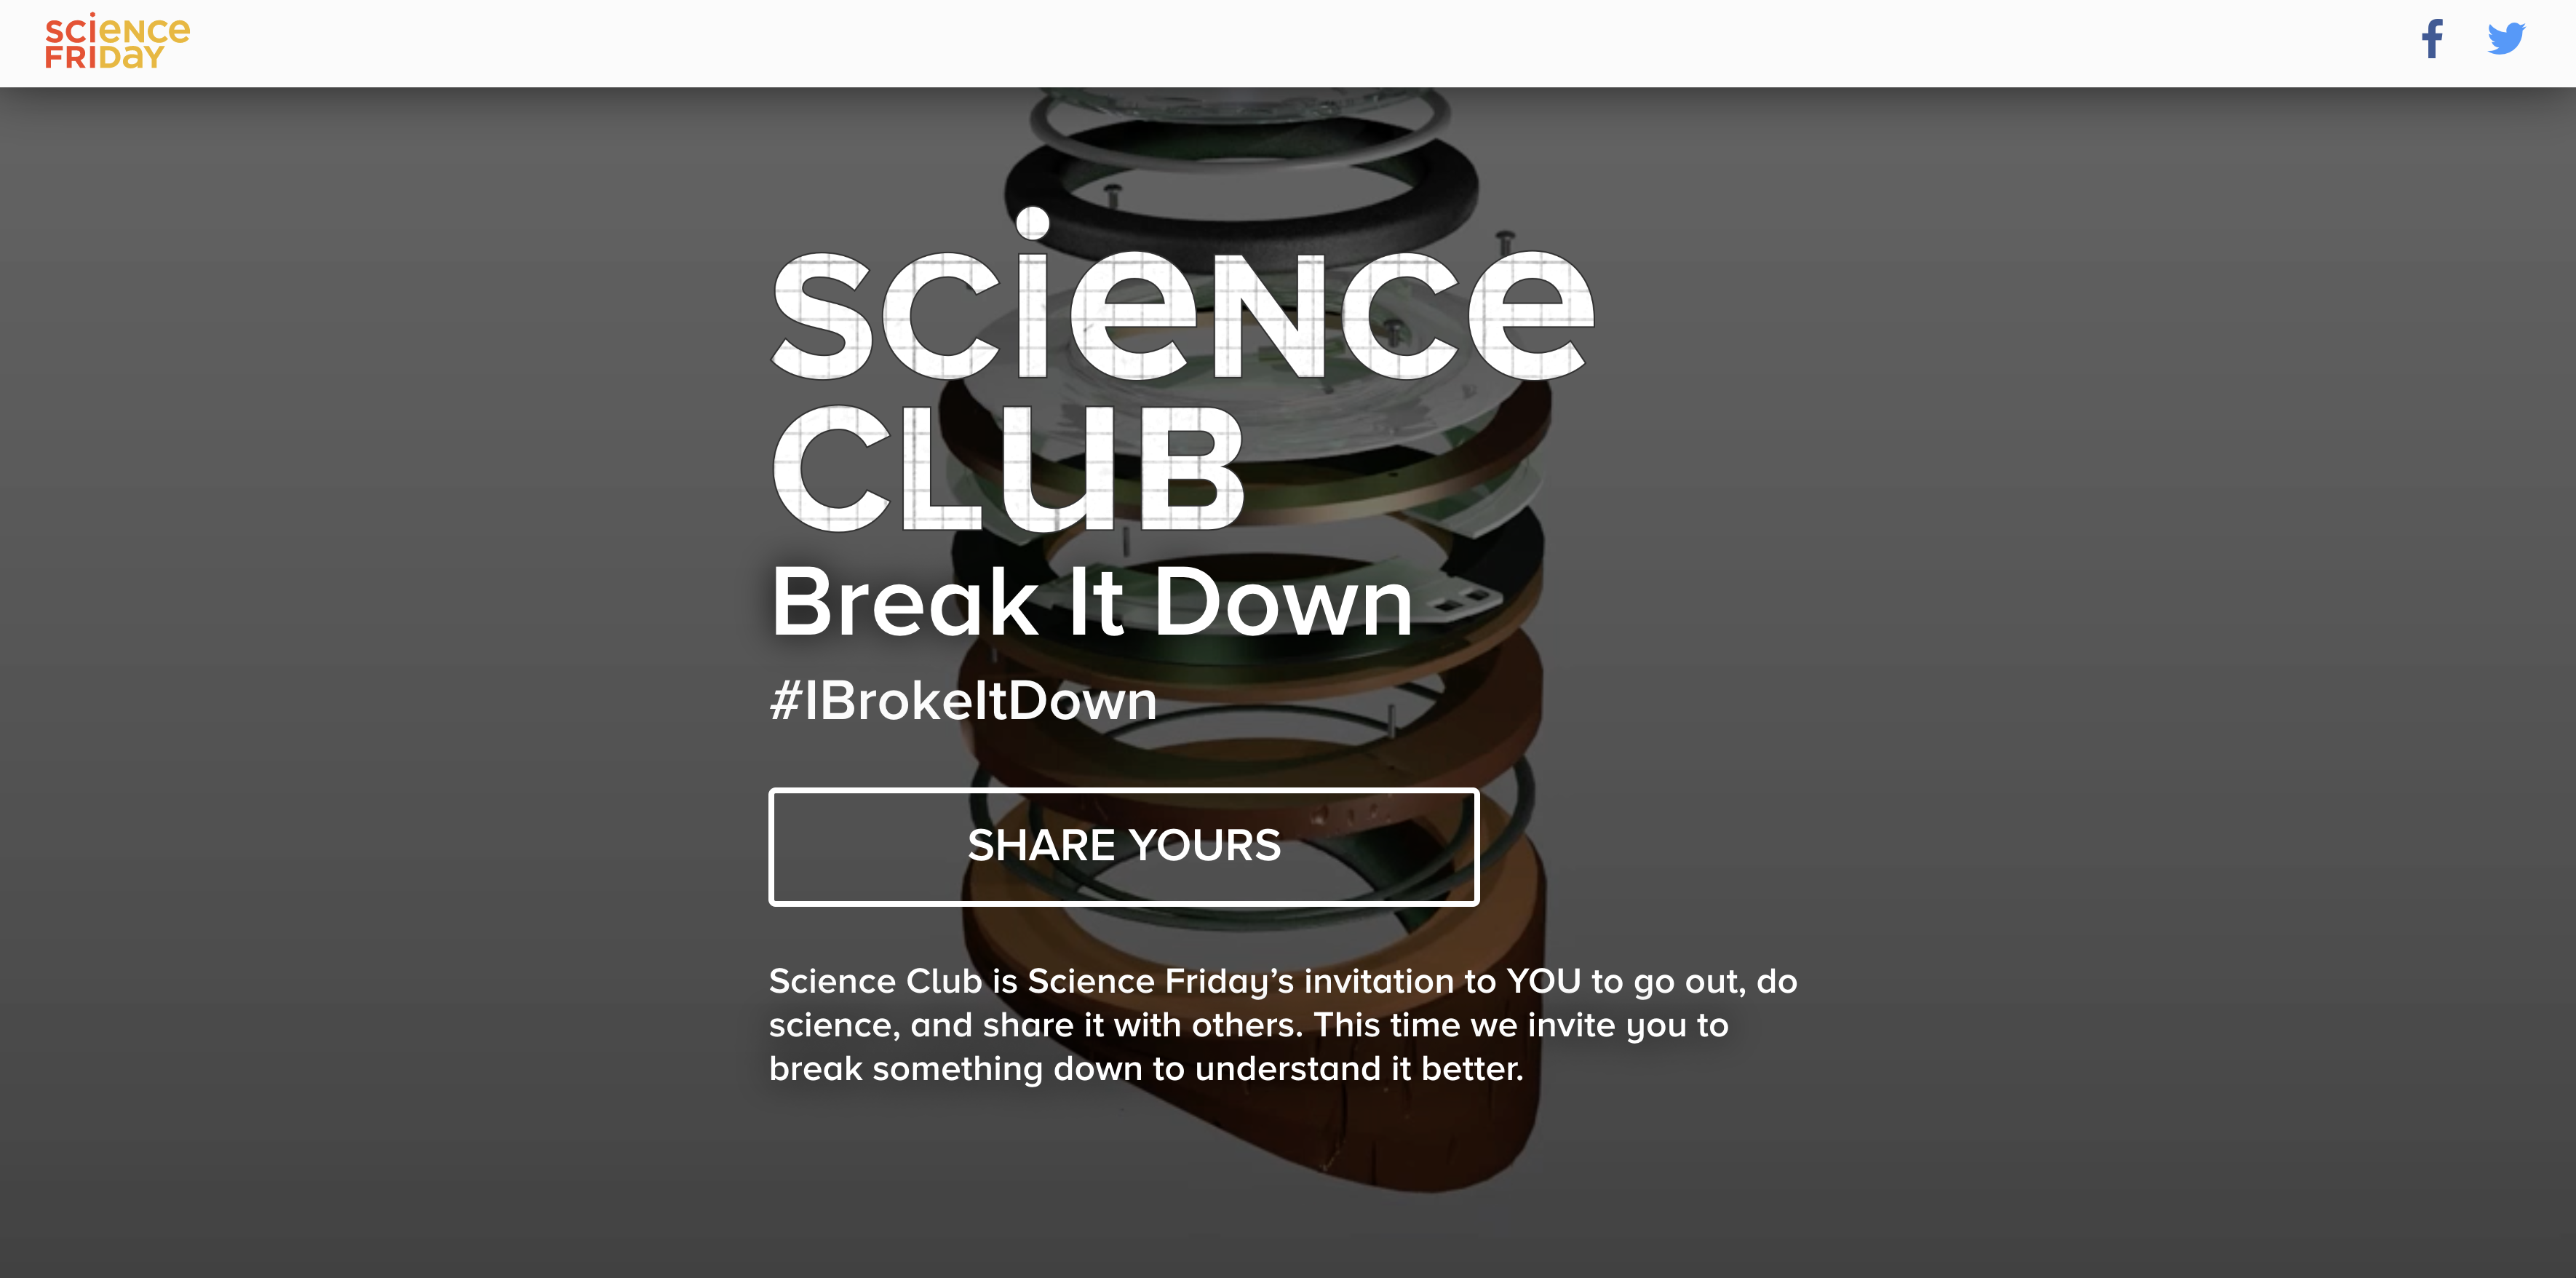 The Science Club home page, where you can tell us what you broke down.